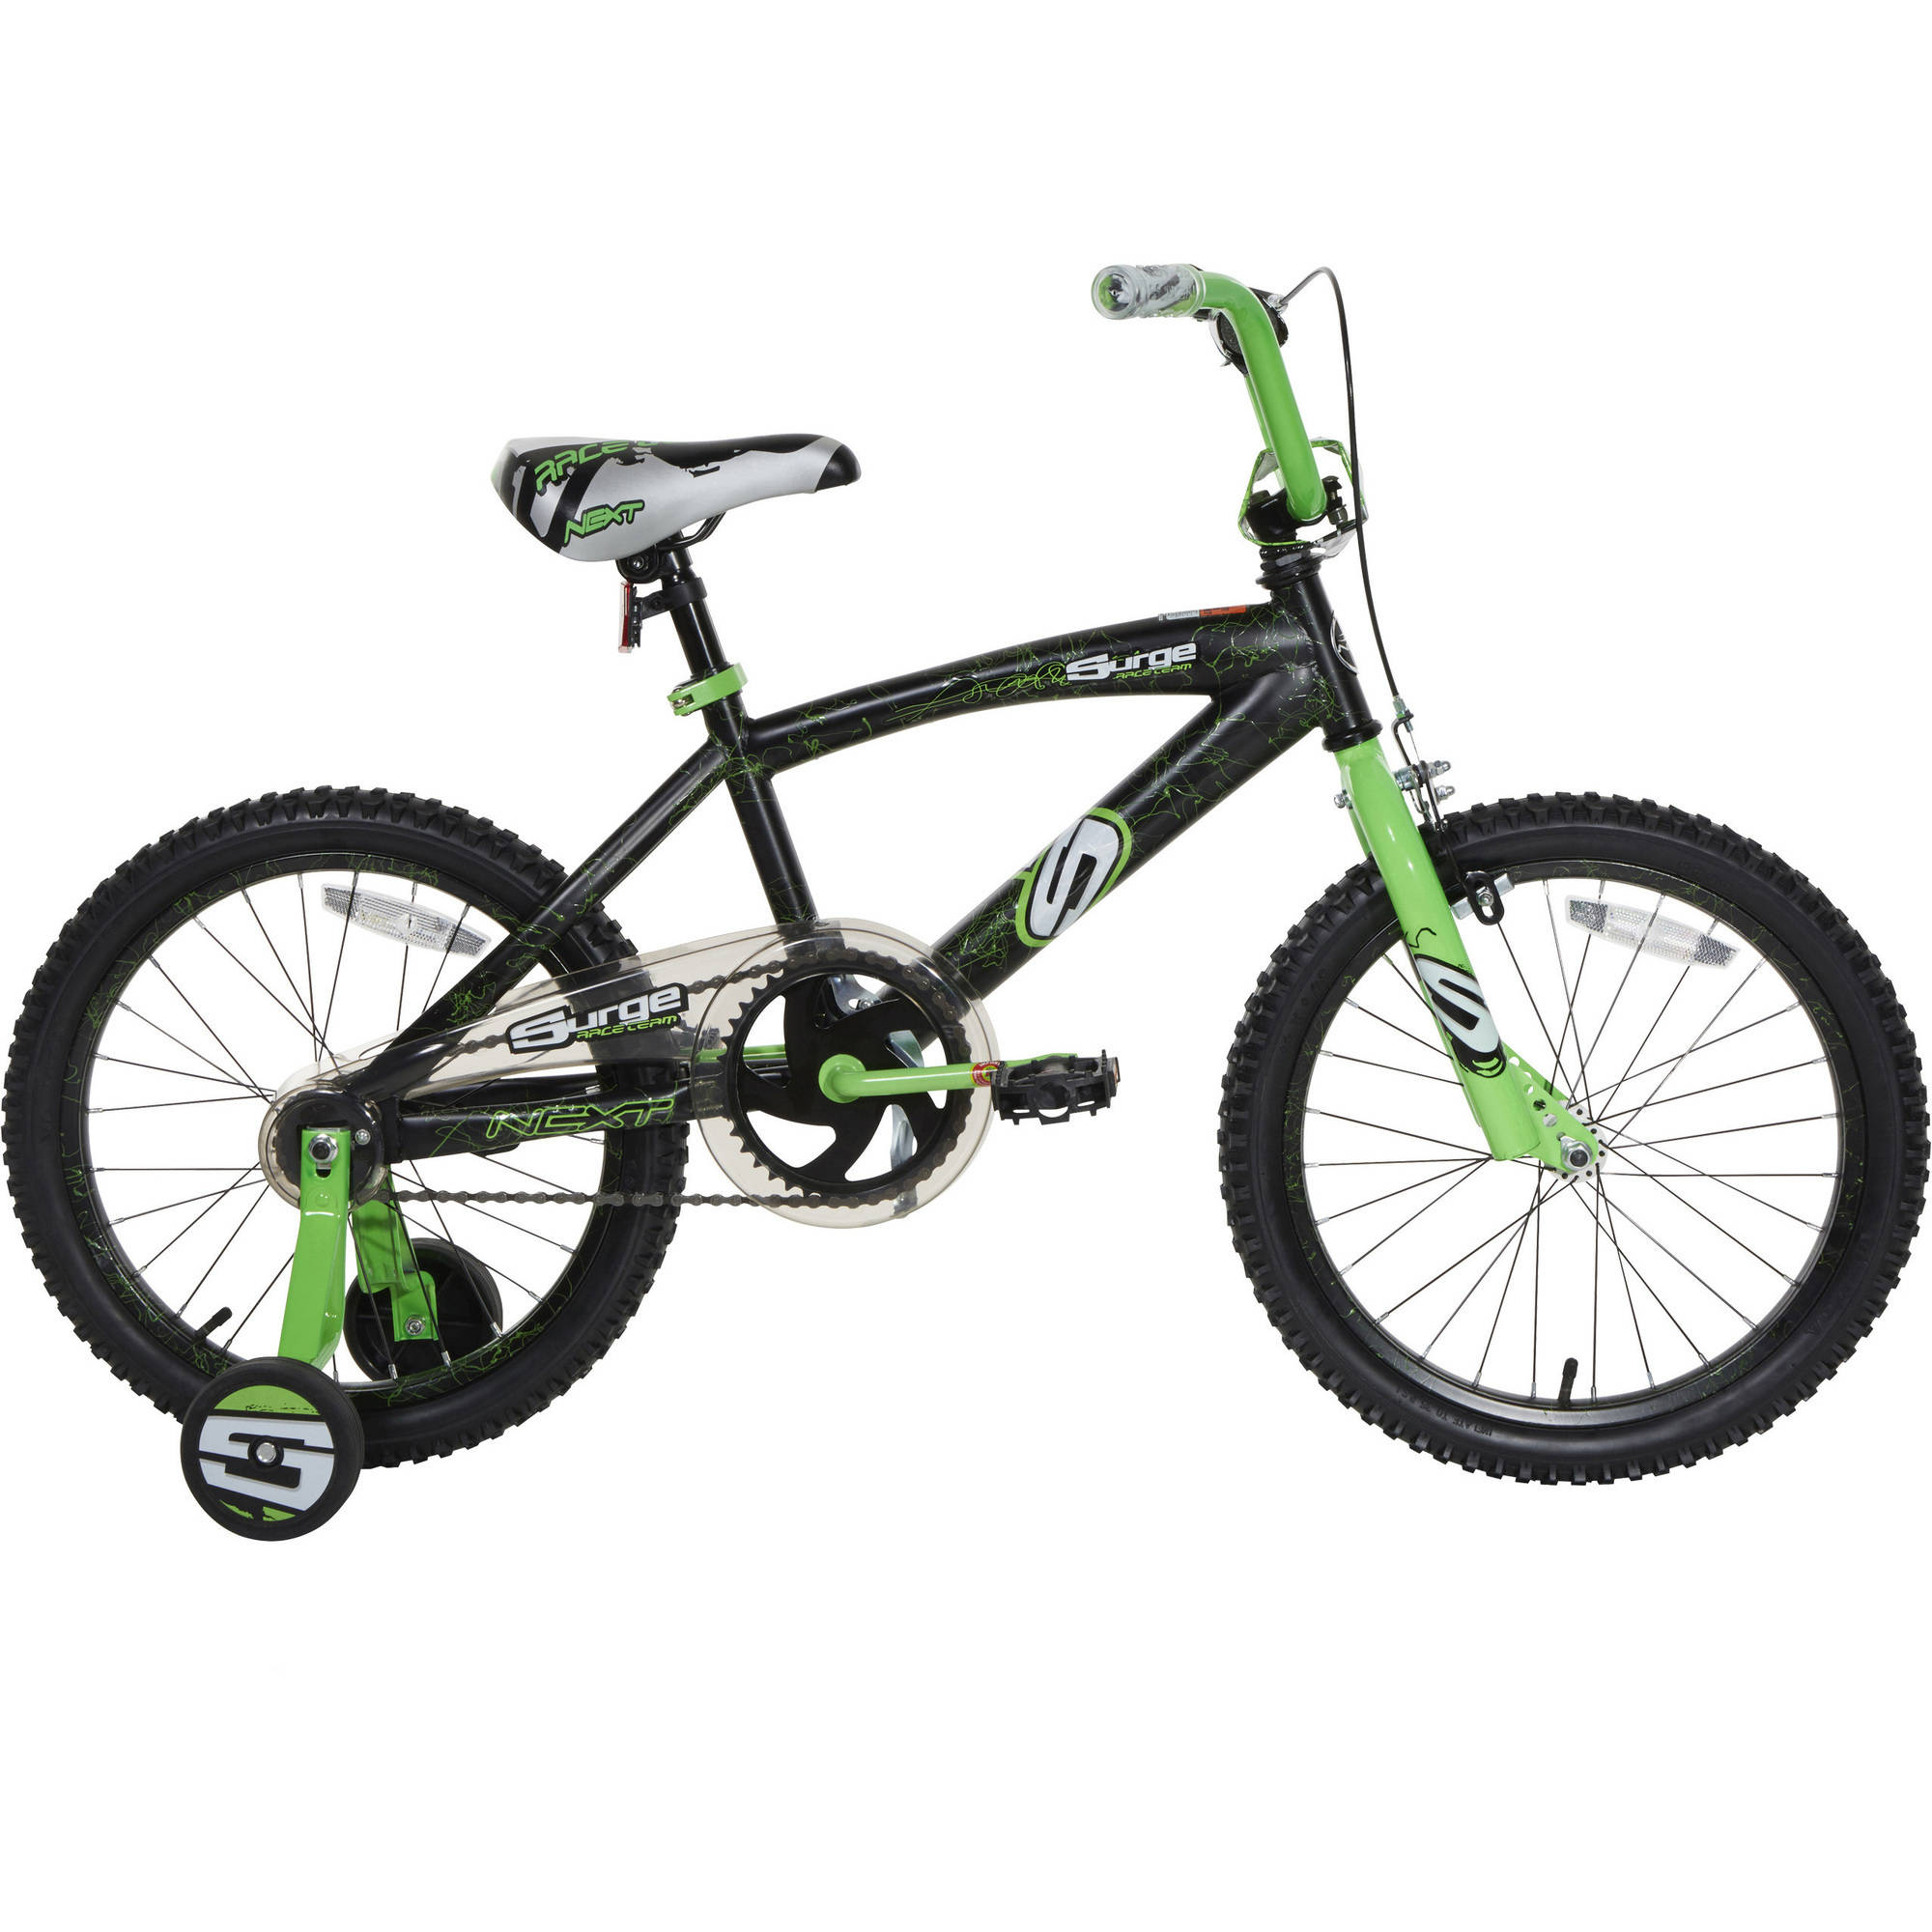 "18"" Next Surge Boys' BMX Bike, Black/Green"